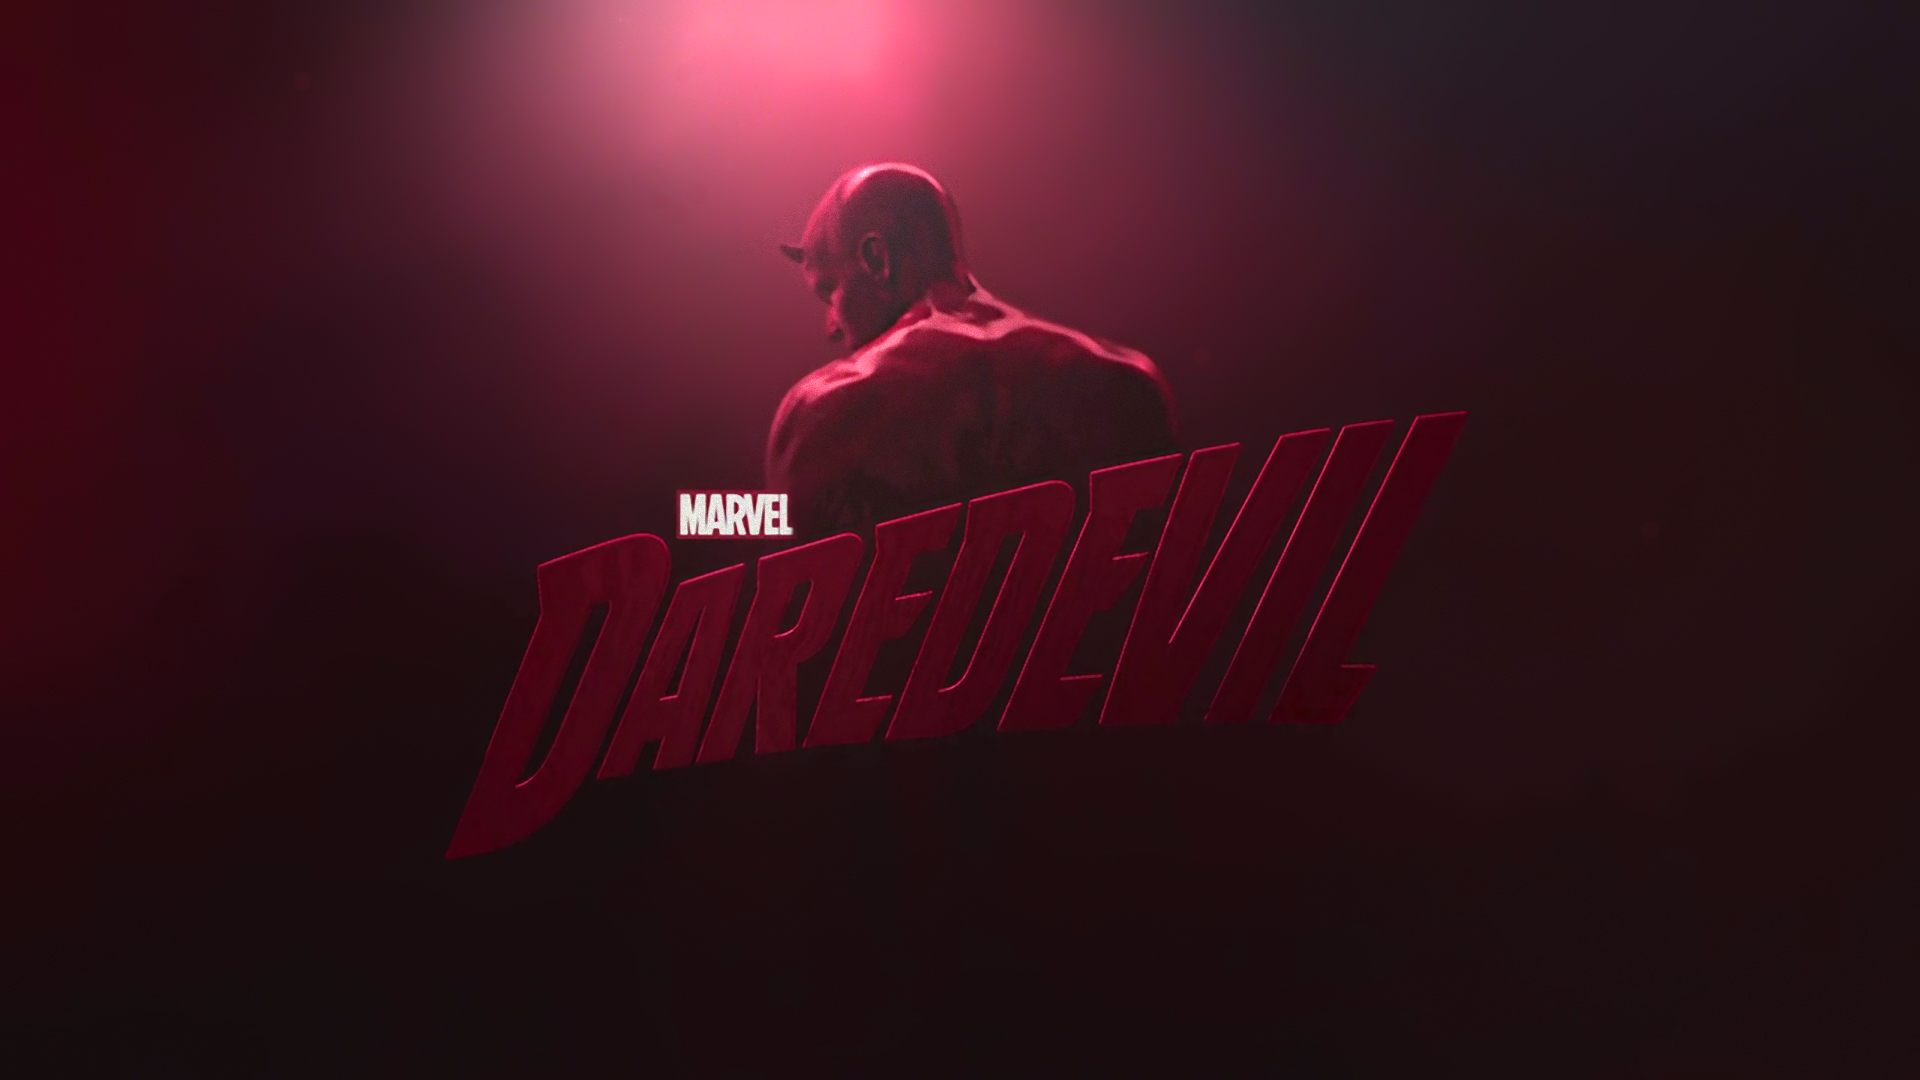 Daredevil wallpaper 6